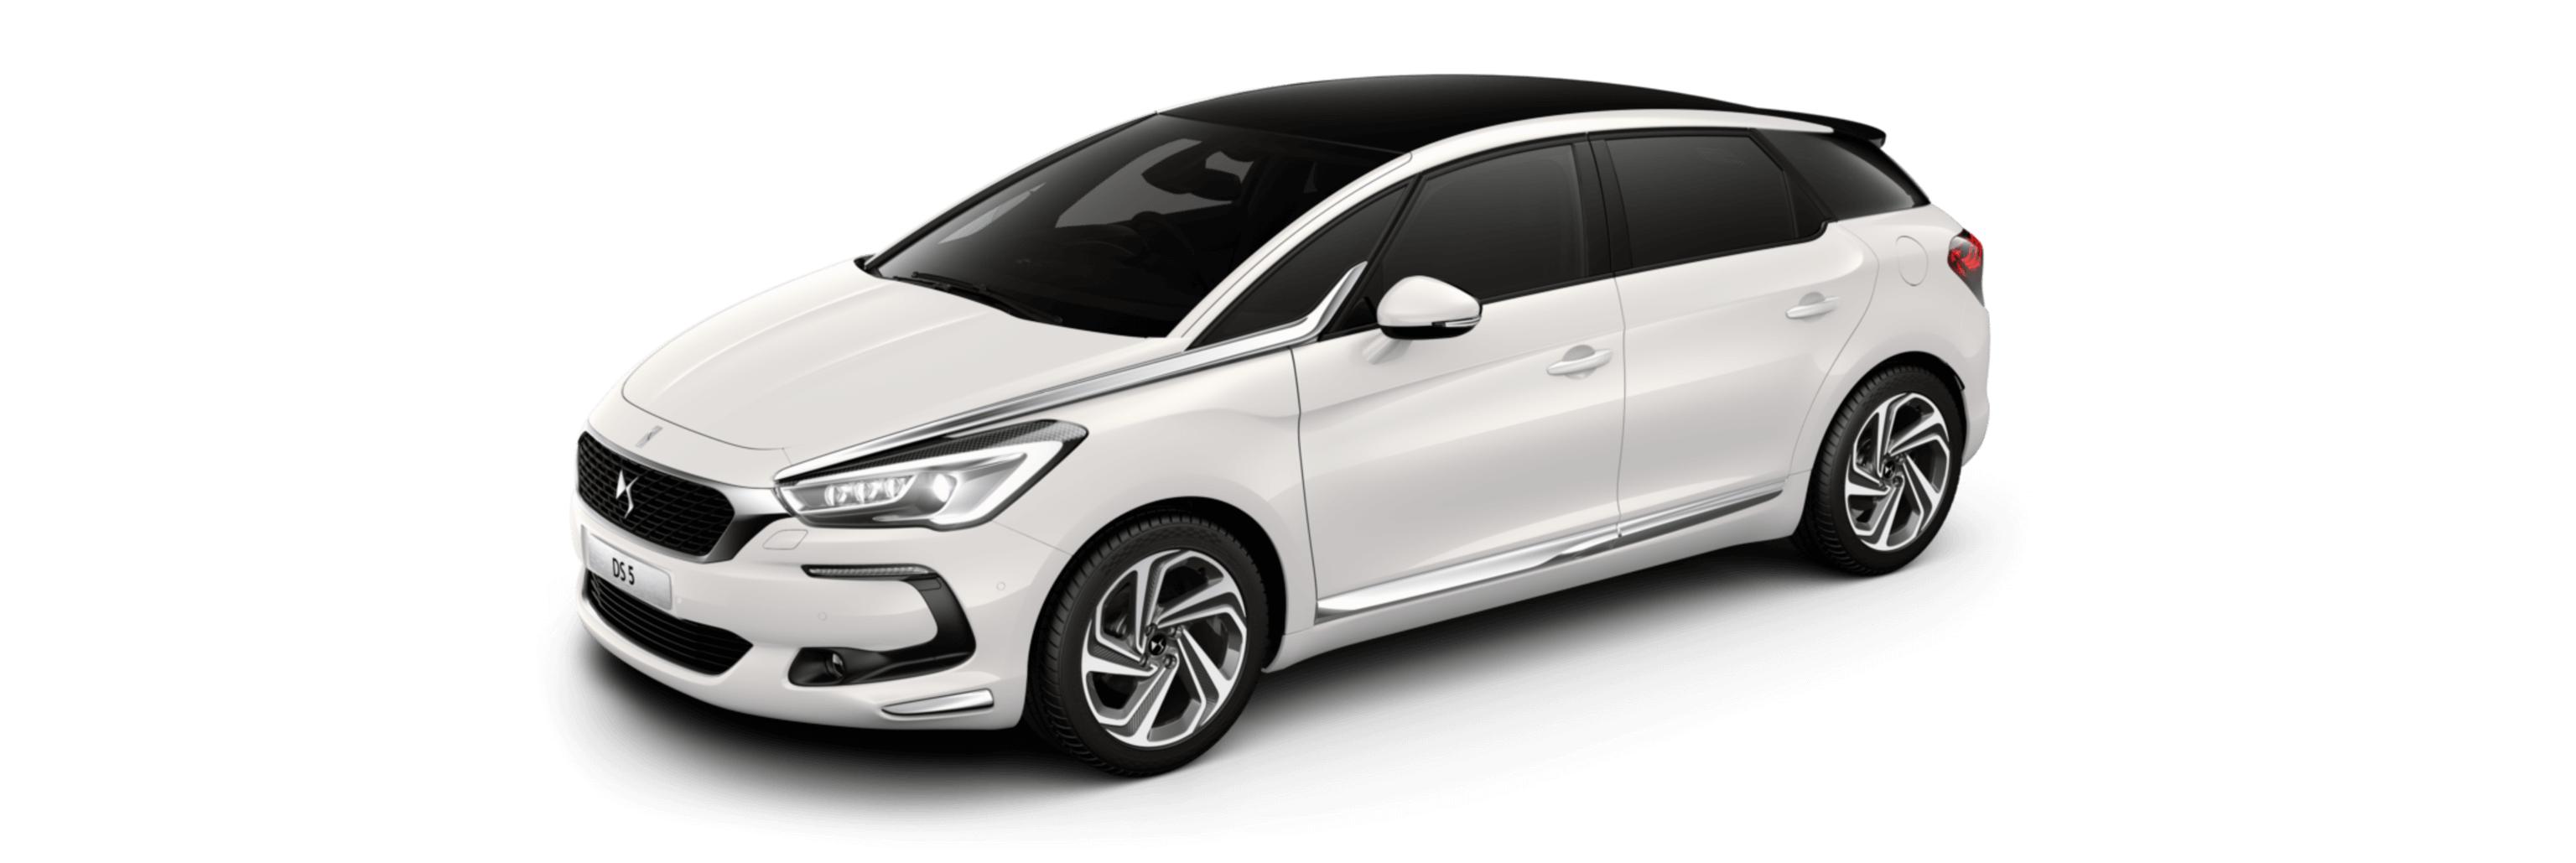 DS 5 - finitions - Echipare Sport Chic